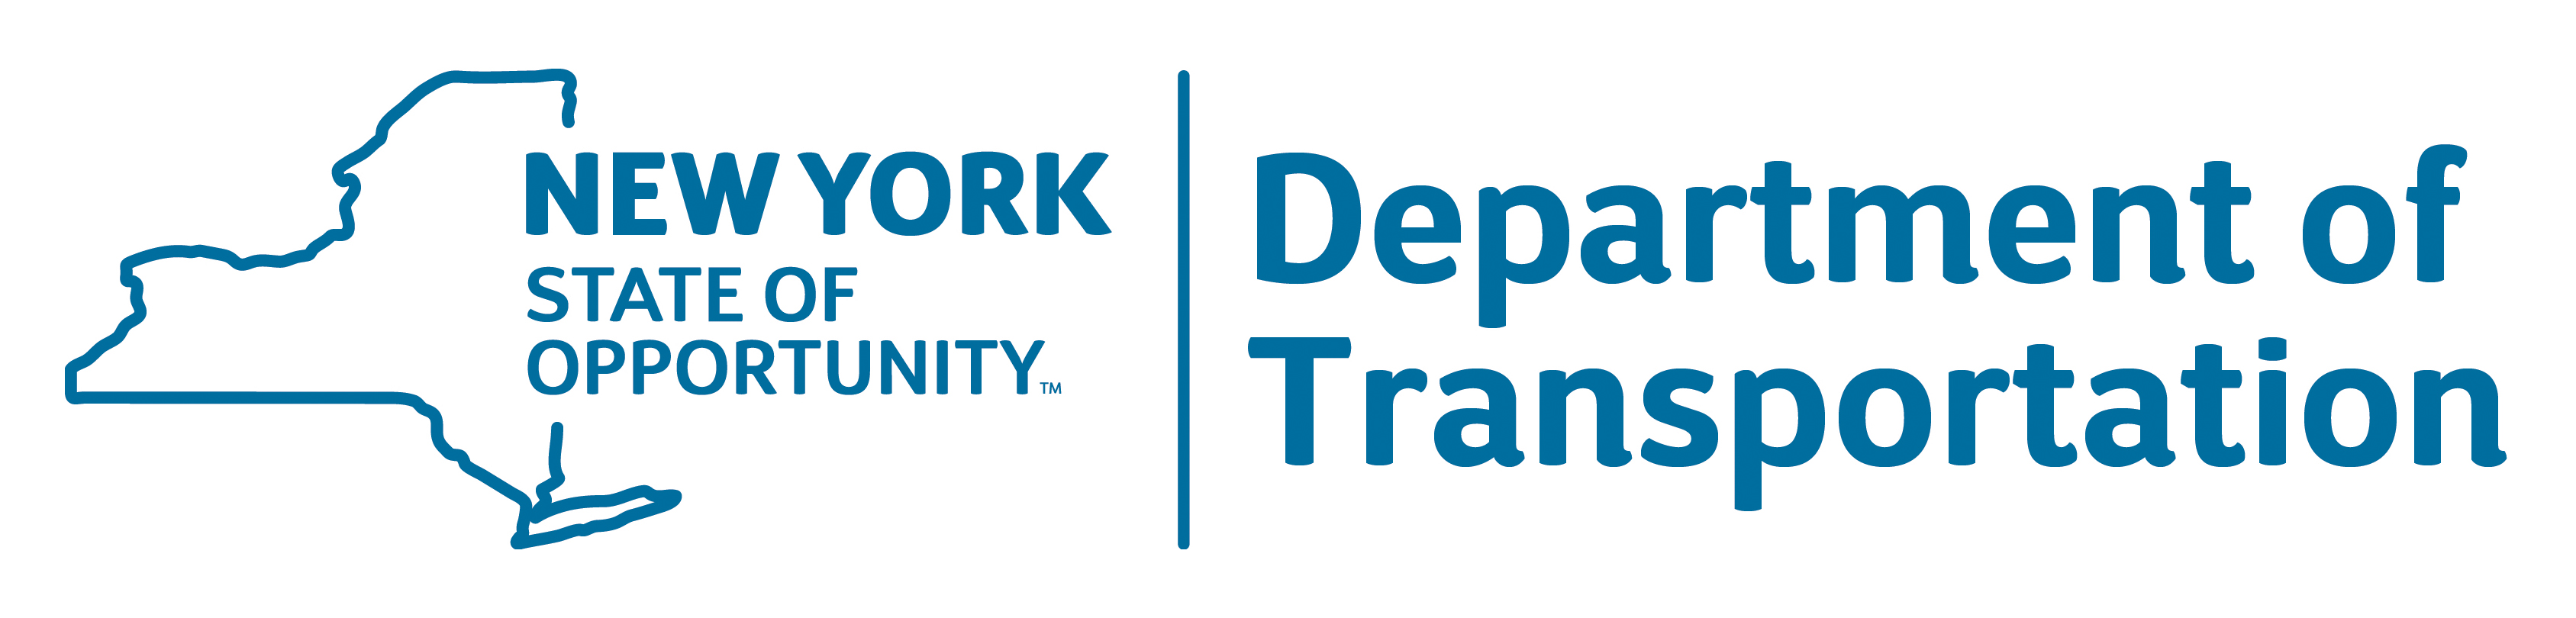 Dept of Transportation Logo JPG.jpg